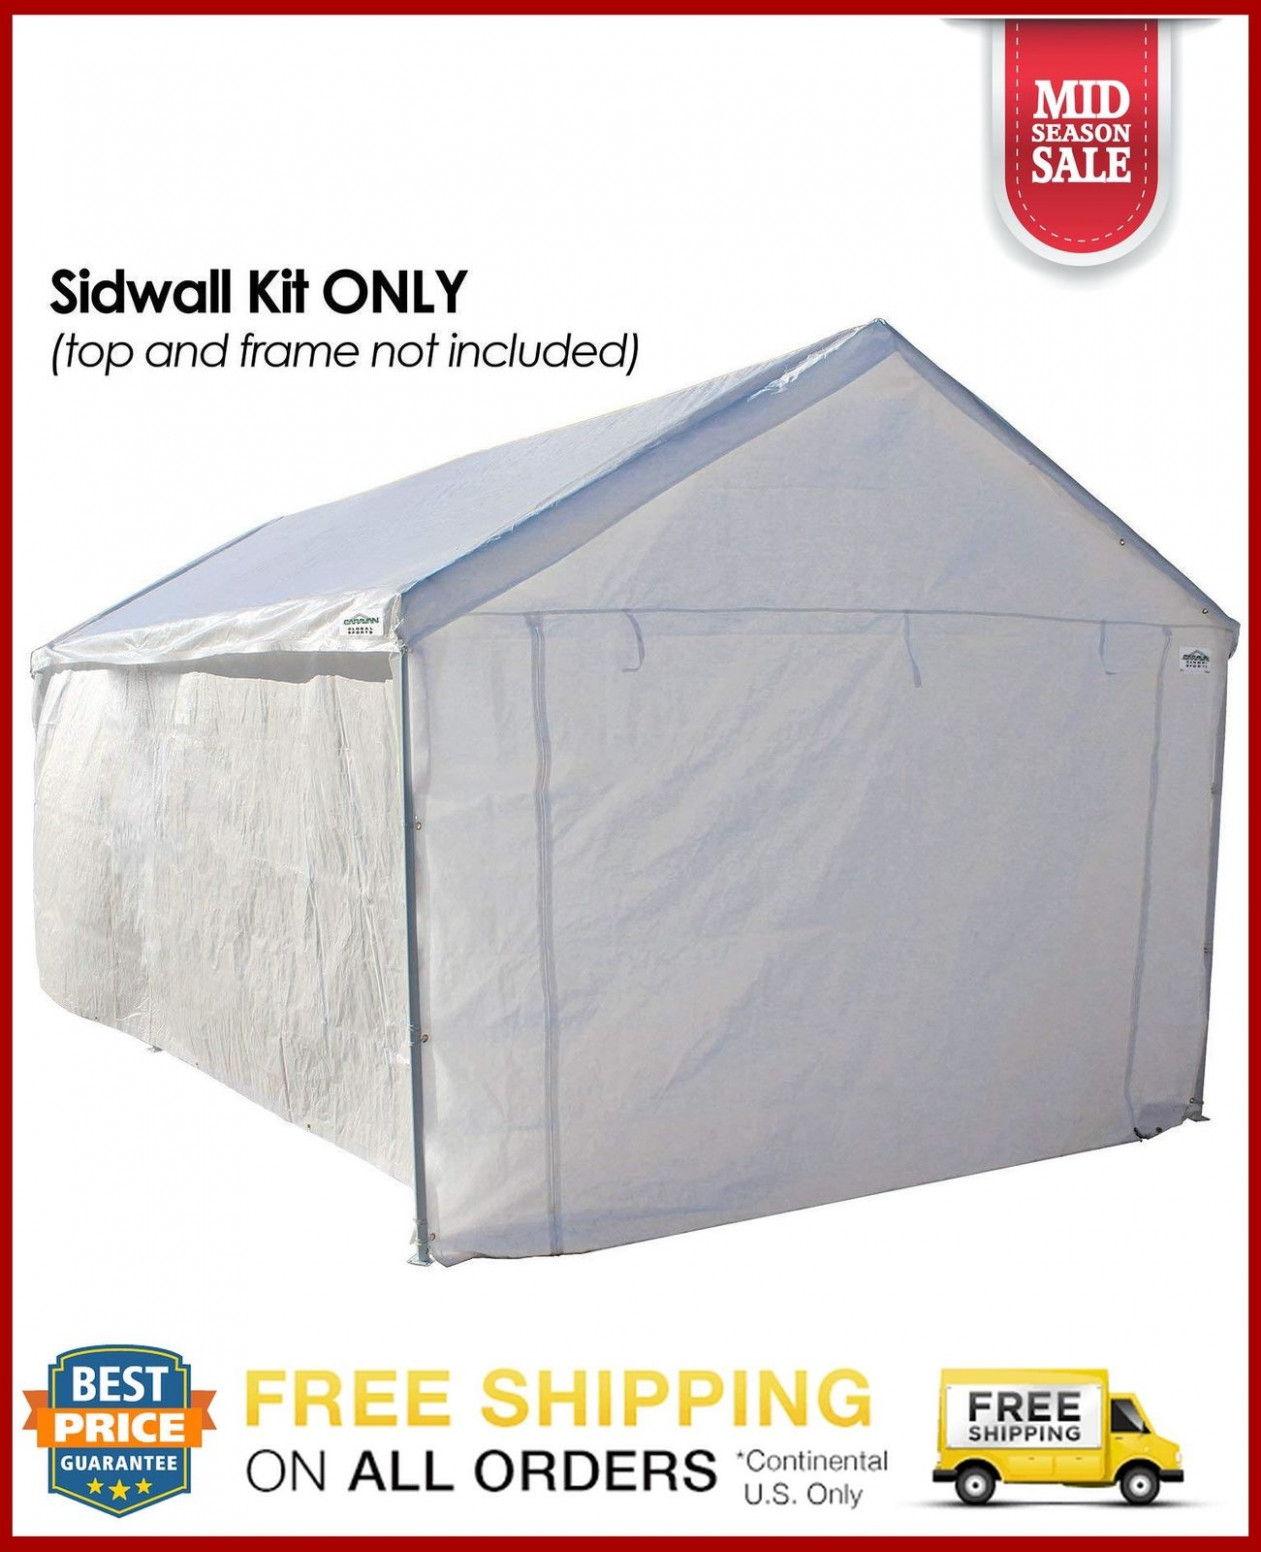 Details About White Heavy Duty Canopy Tent Carport 9 X 9 Steel Portable Car Shelter Storage Carport Canopy Height